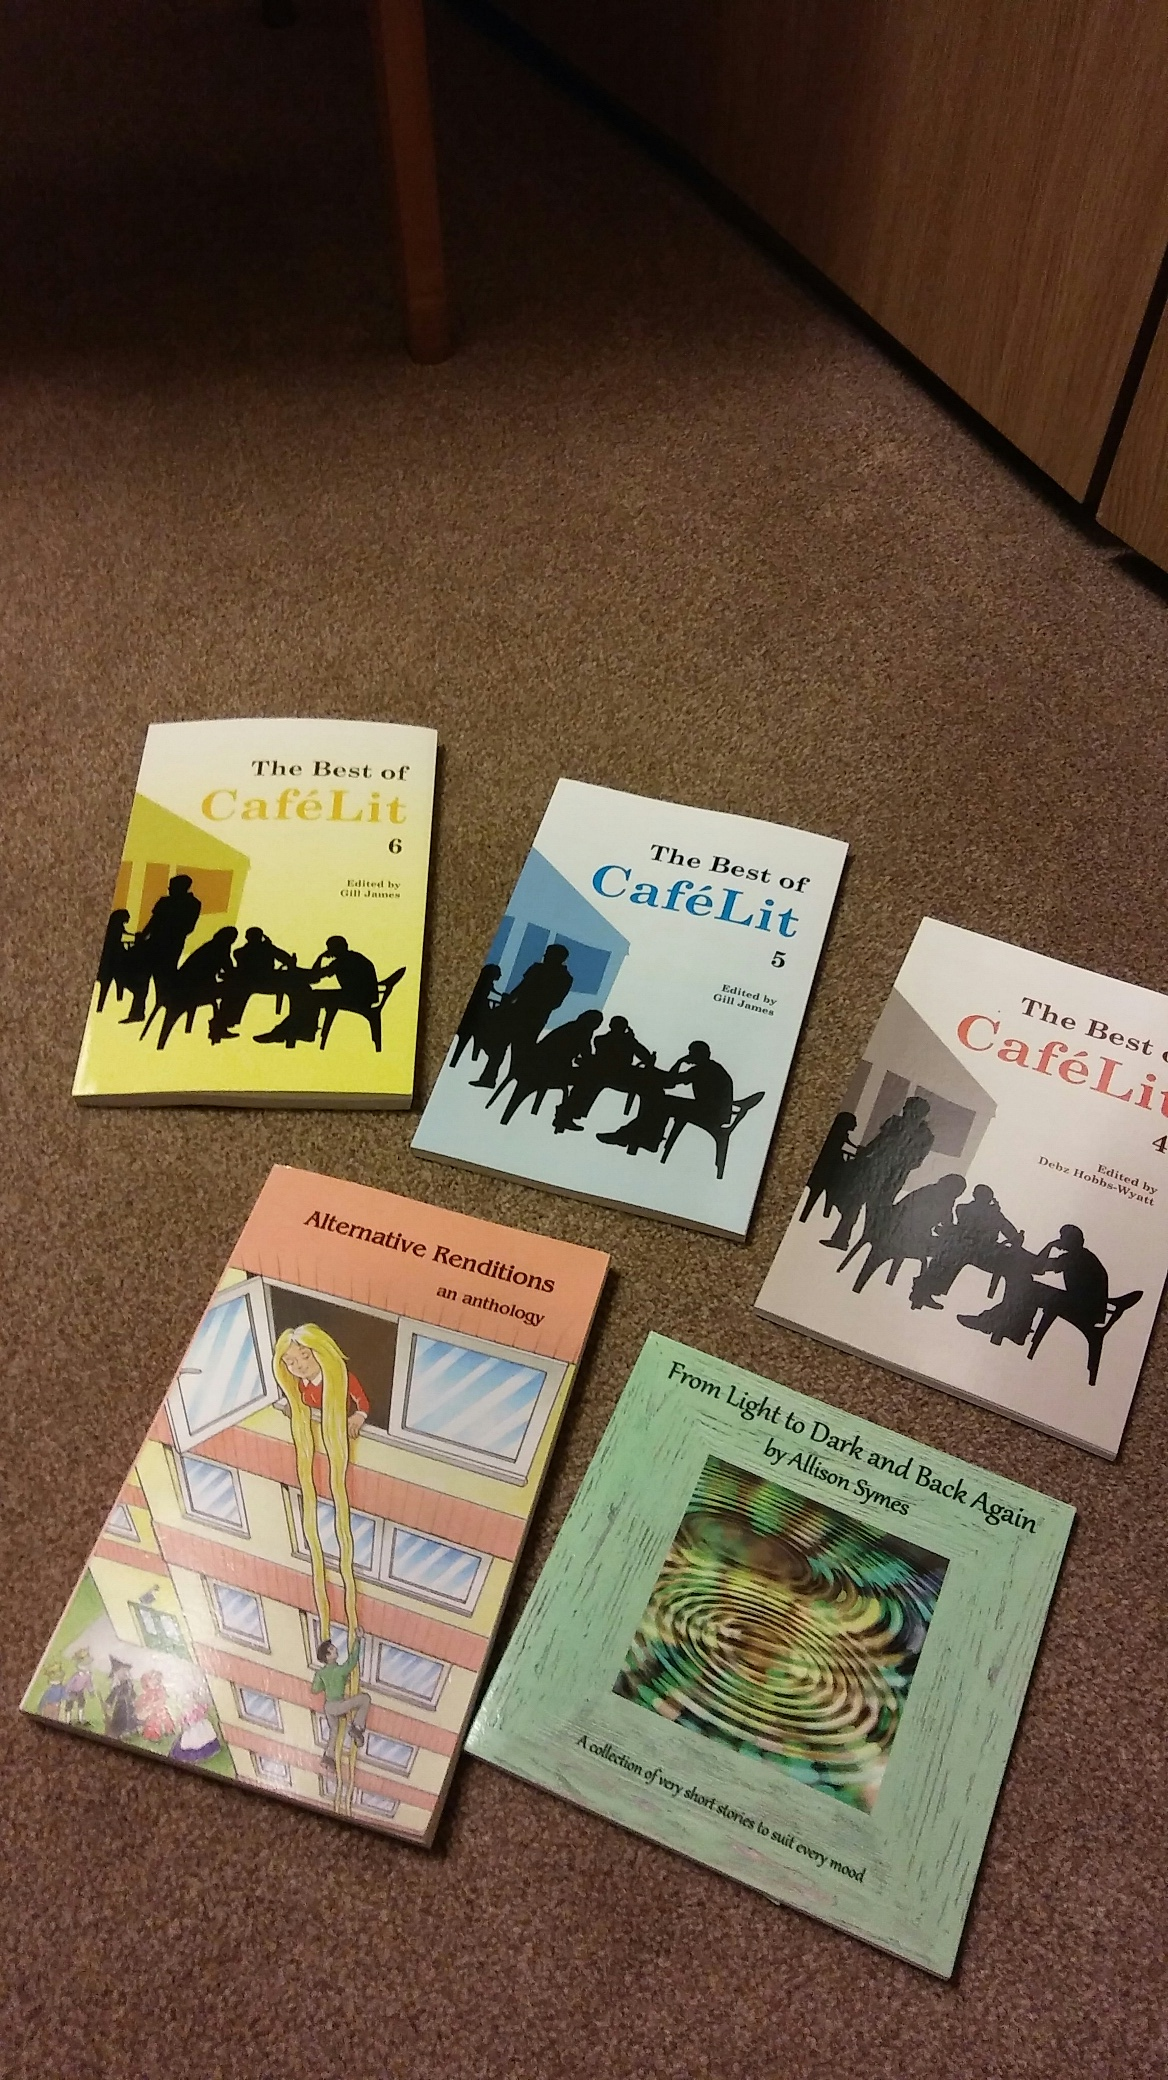 Books from Bridge House, Chapeltown and Cafelit